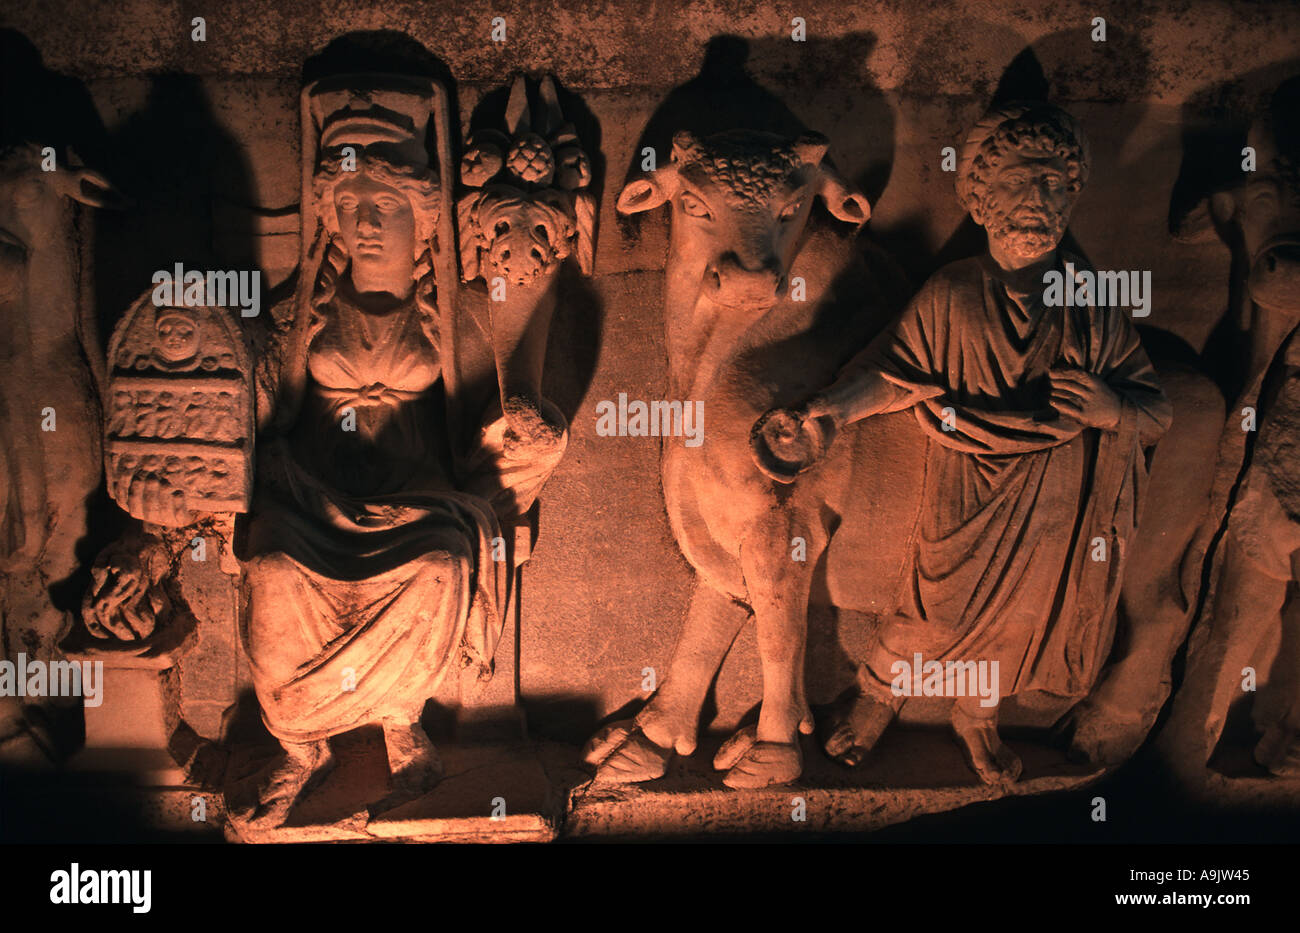 Antiquities from the Roman period on display in the Sarcophagus Room of Antalya Regional Museum Antalya Turkey - Stock Image